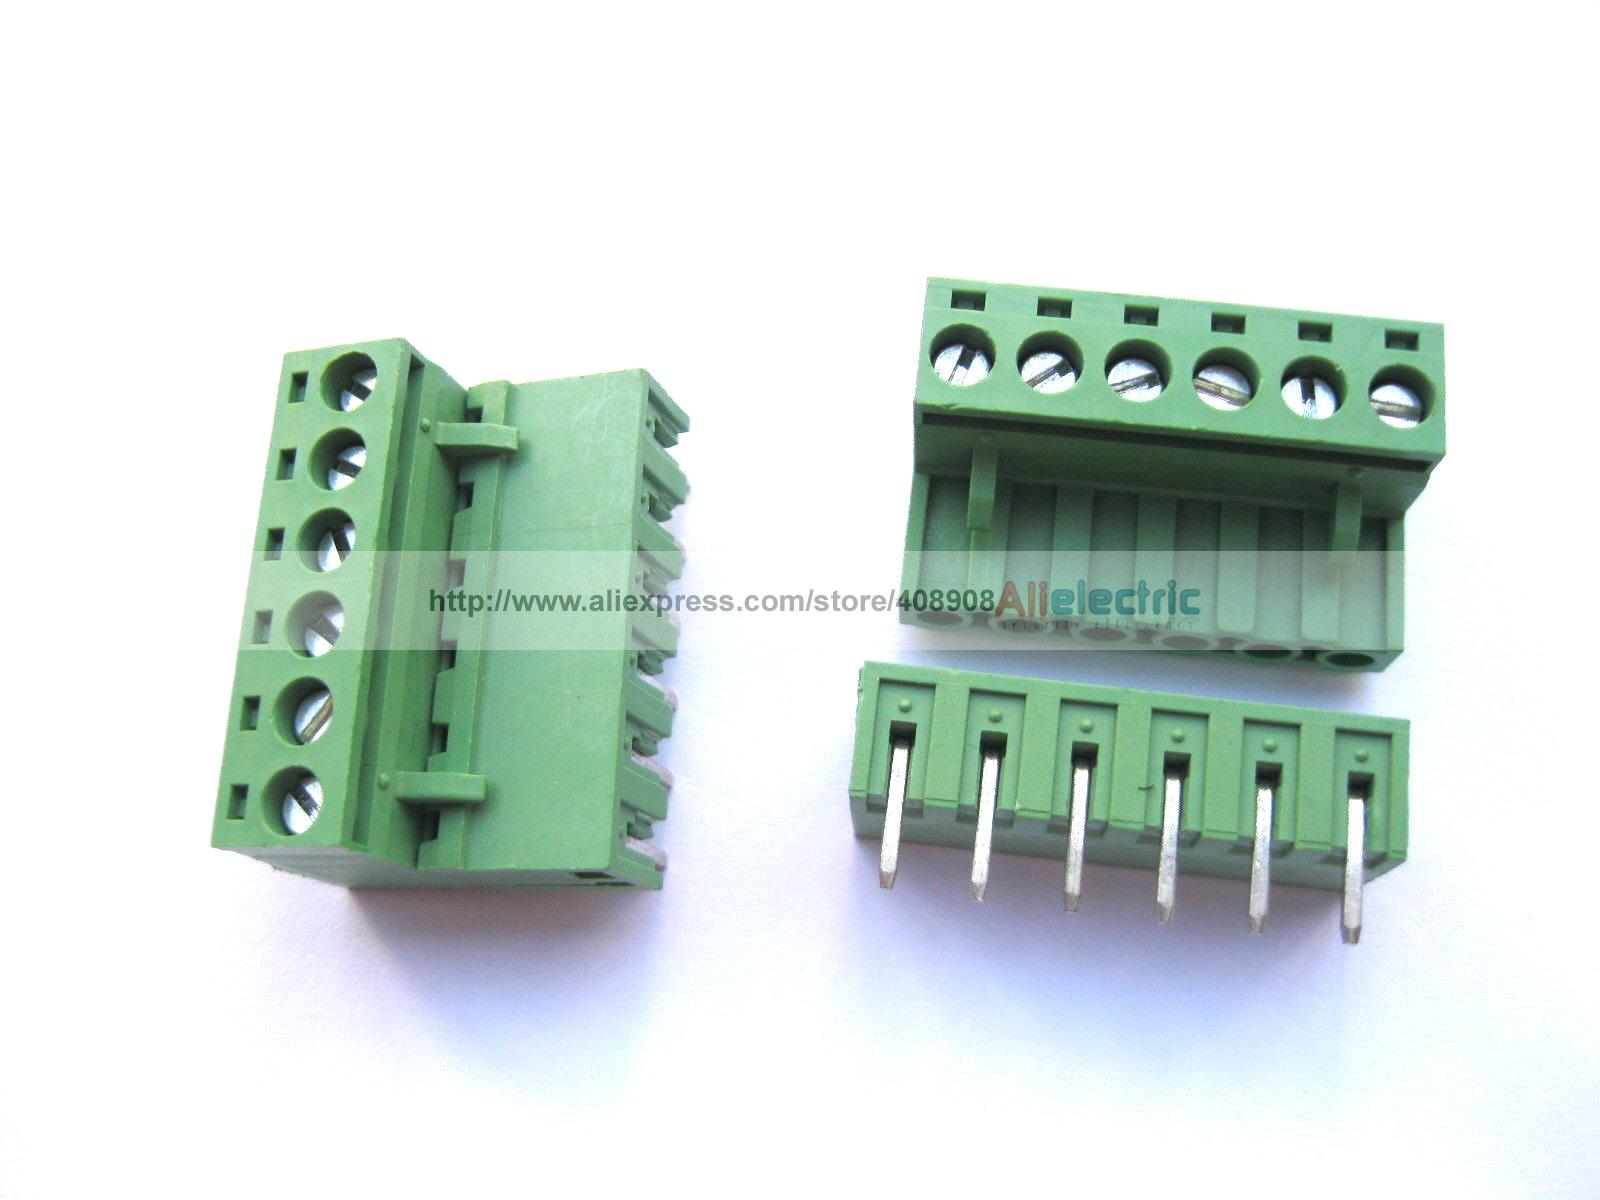 50 Pcs 5.08mm Angle 6 Pin Screw Terminal Block Connector Pluggable Type Green 100 pcs green 6 pin 5 08mm screw terminal block connector pluggable type